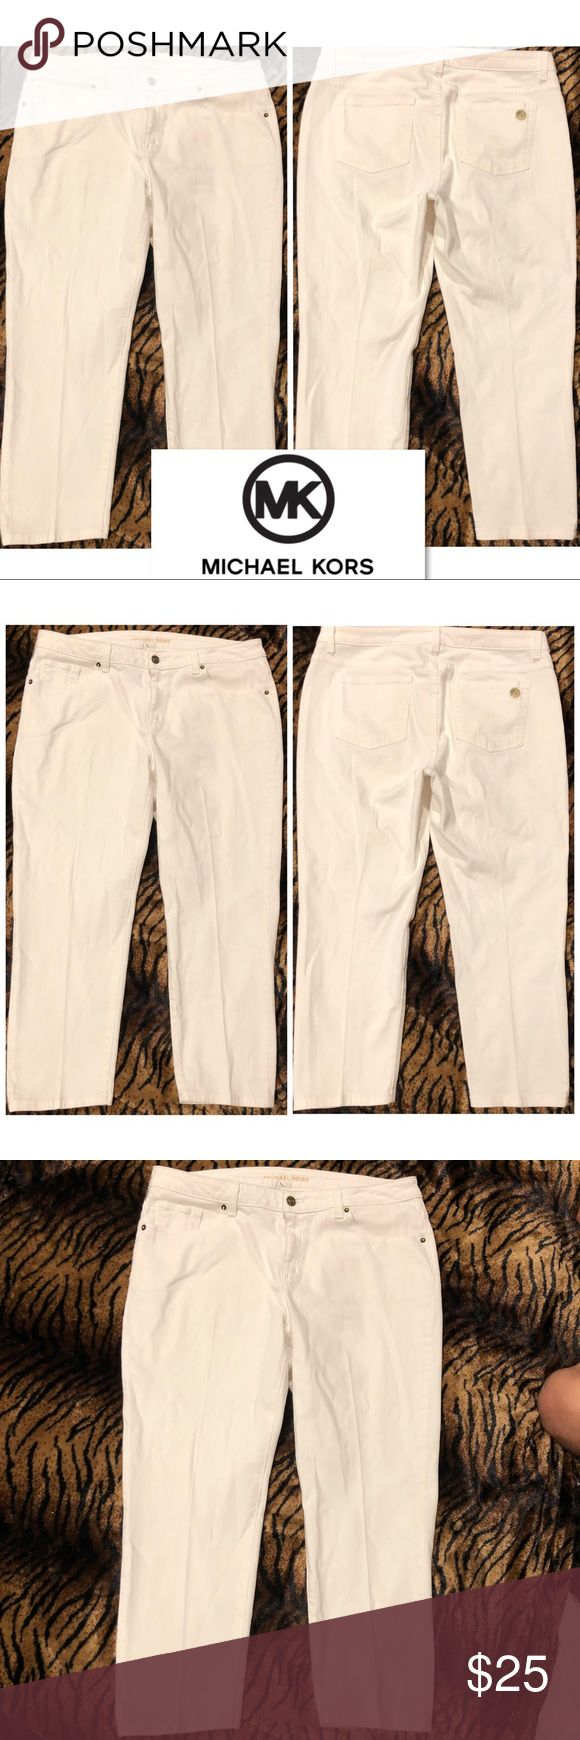 Michael Kors Cropped Cream Jeans size 12 No stain  Made in Colombia  Size: 12 Michael Kors Jeans Ankle & Cropped